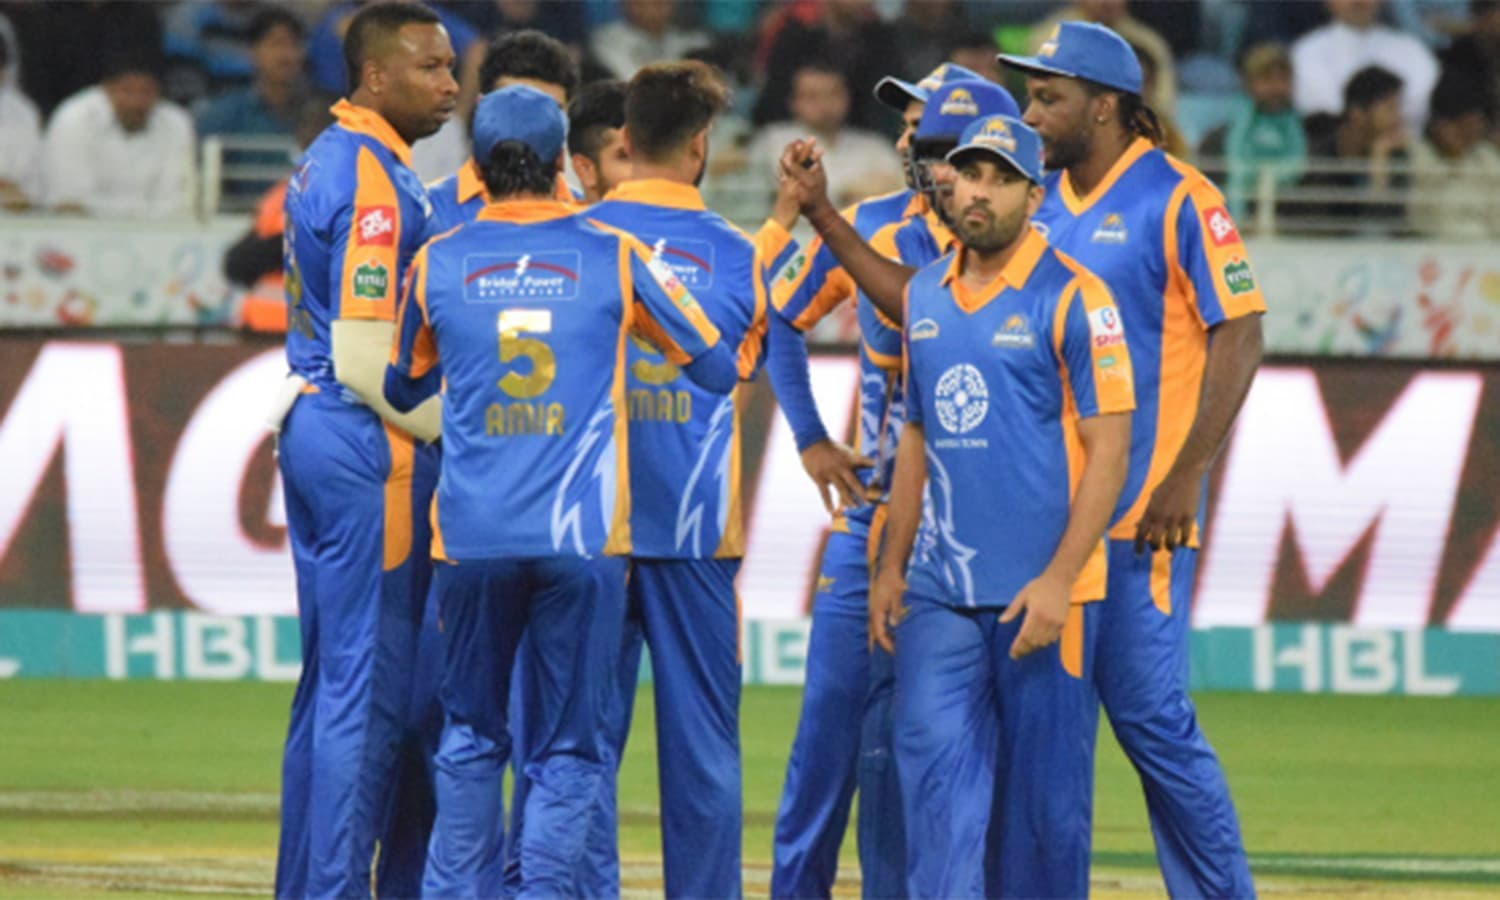 Karachi's premier league team, Karachi Kings. Total worth of the team is $26 million.